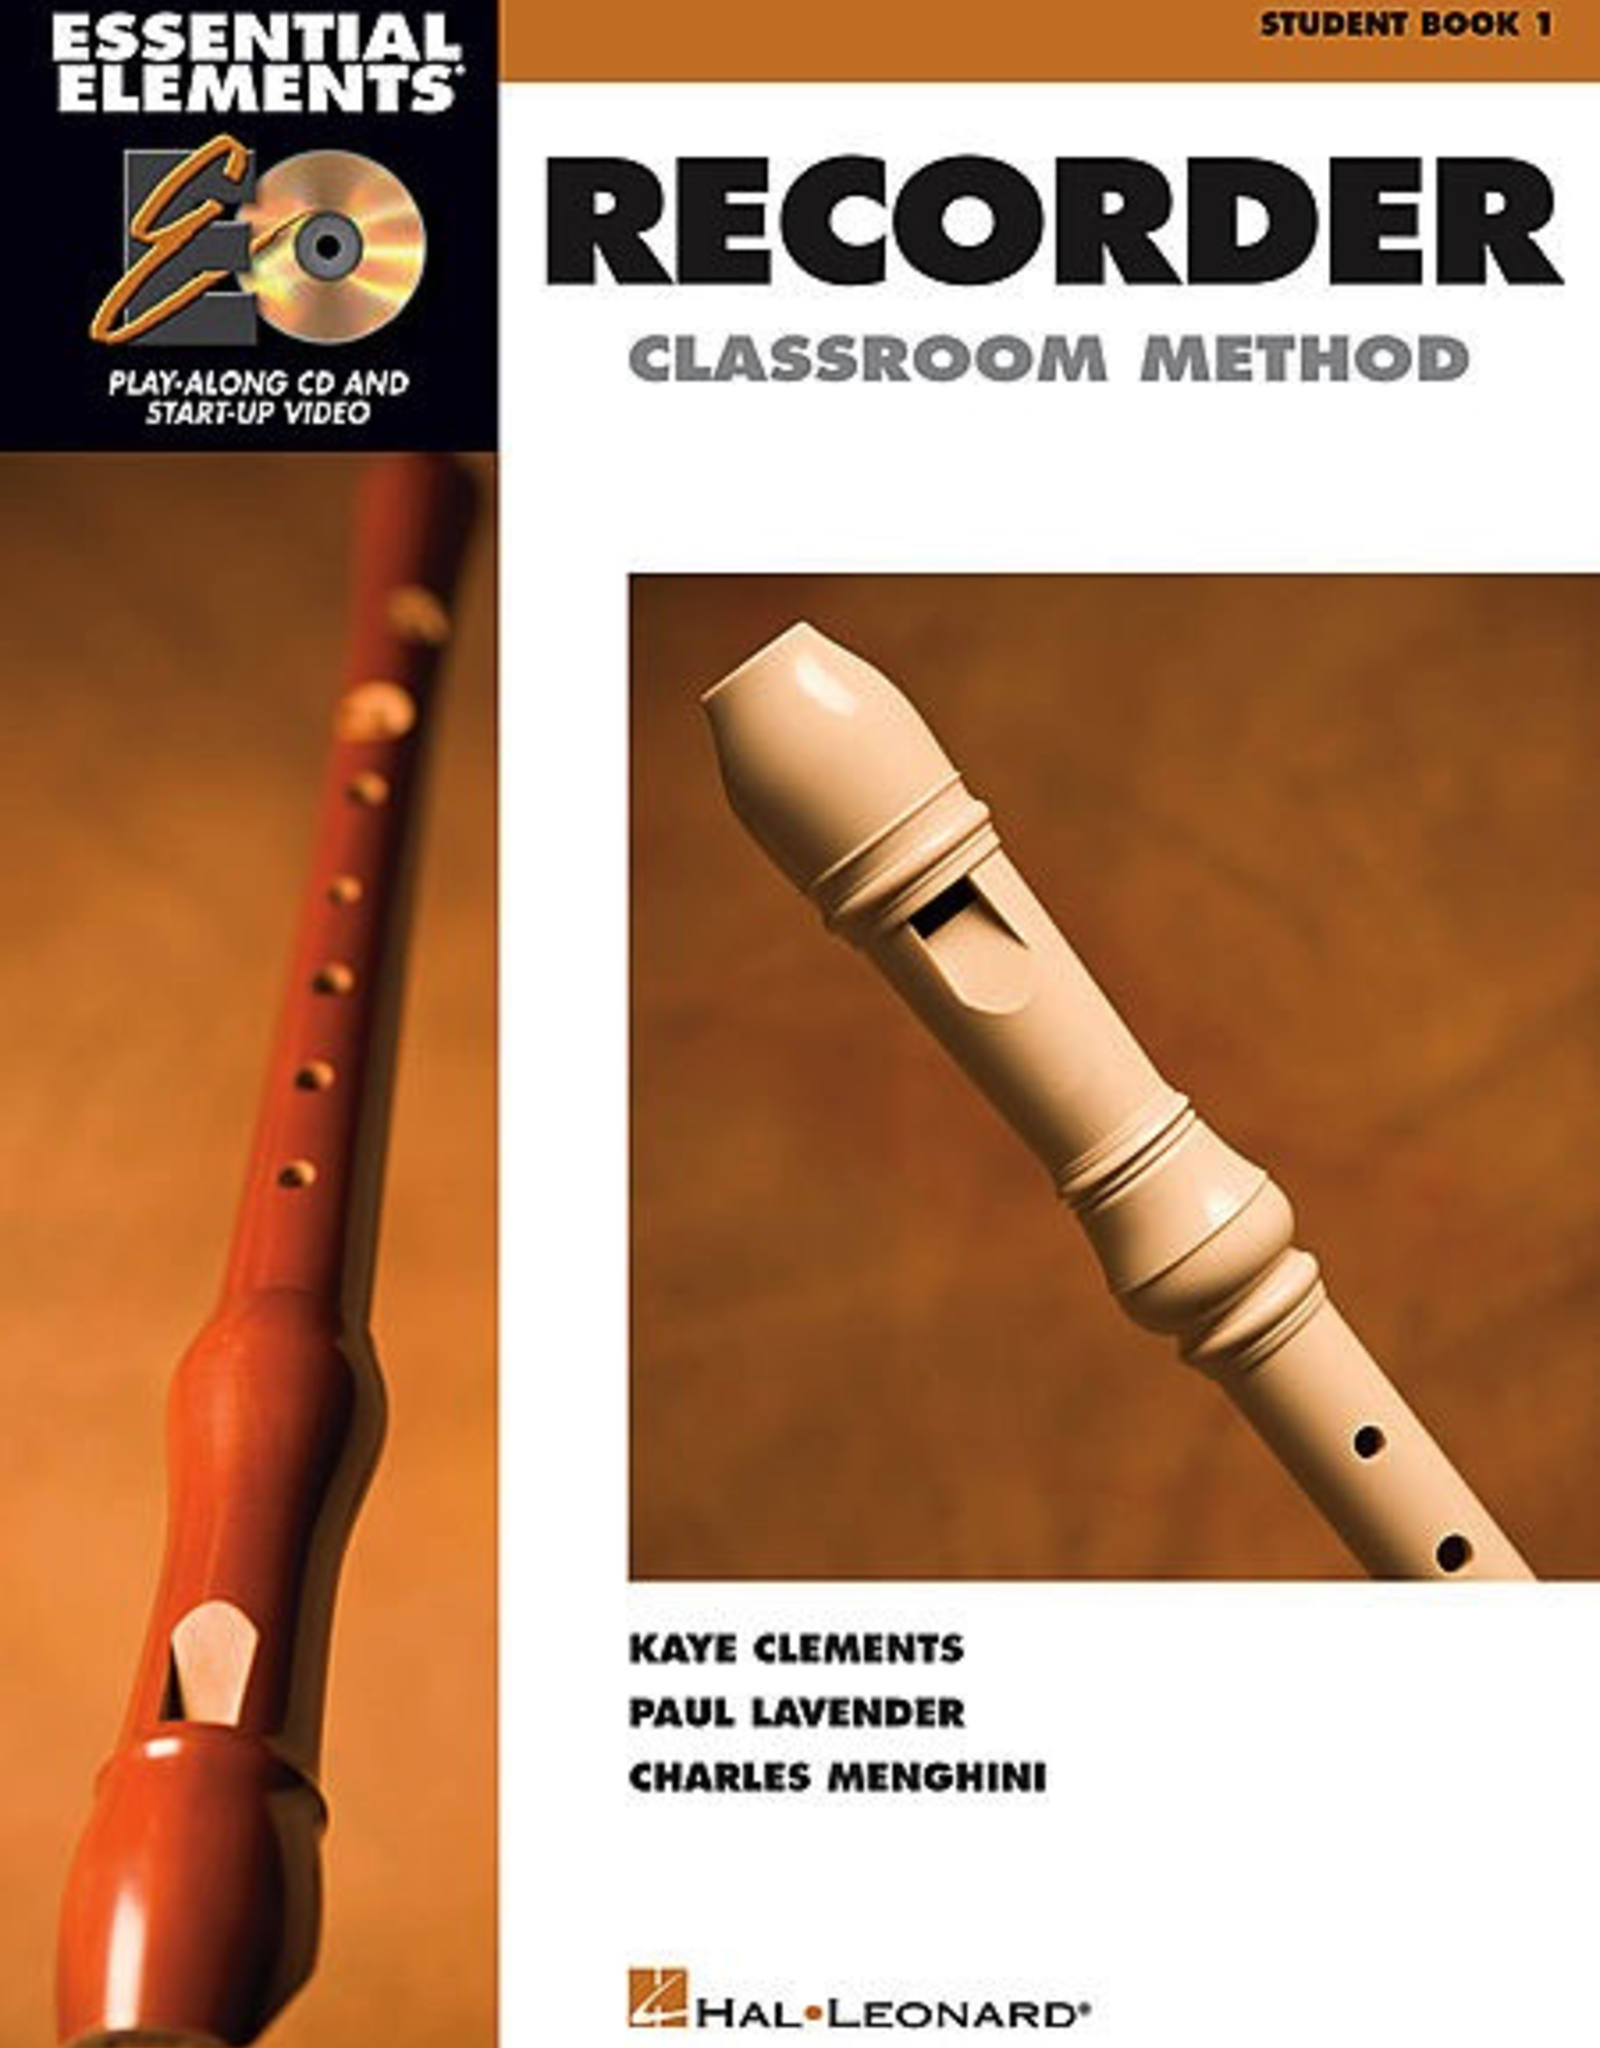 Hal Leonard Hal Leonard Essential Elements Recorder Classroom Method - Student Book 1